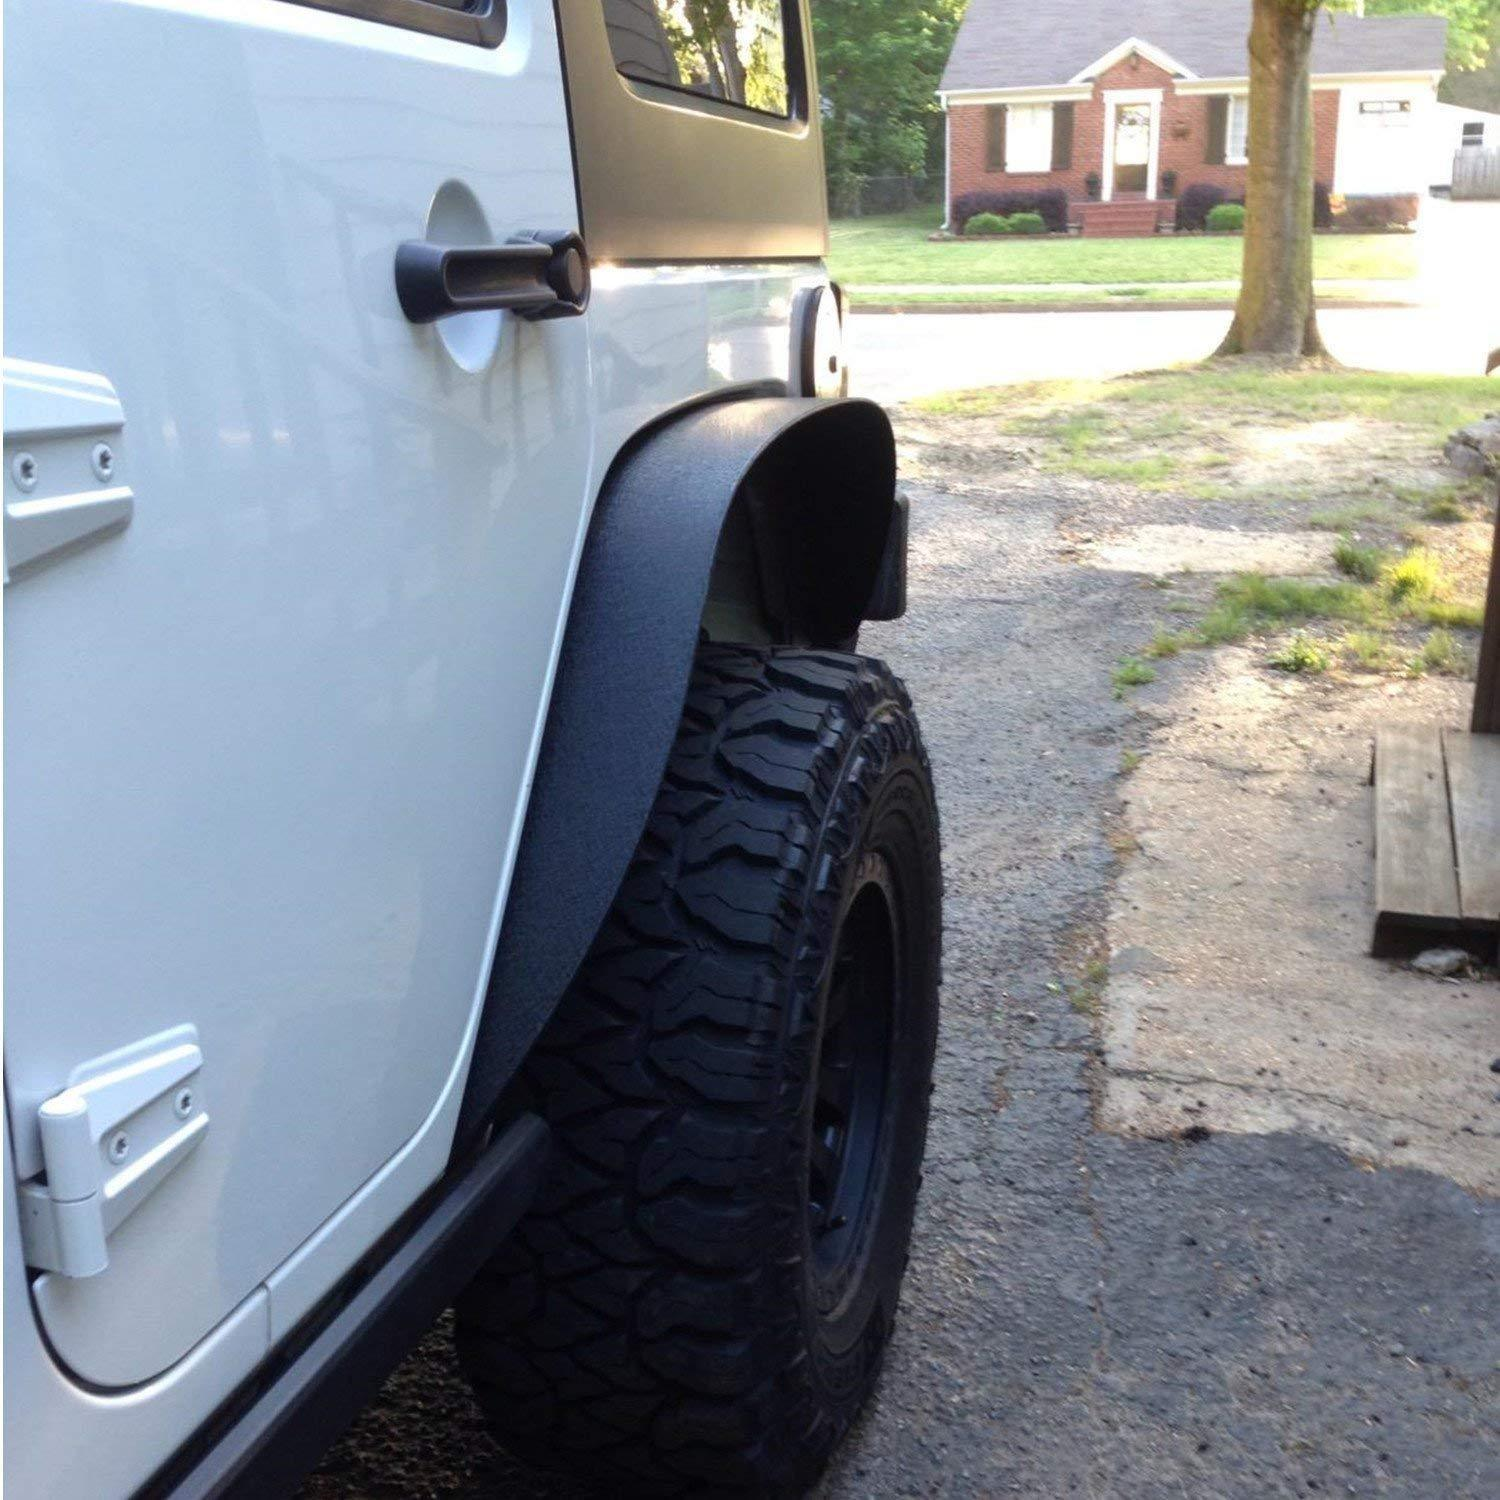 Fender Mud Guard Replacement 07-17 Jeep Wrangler JK